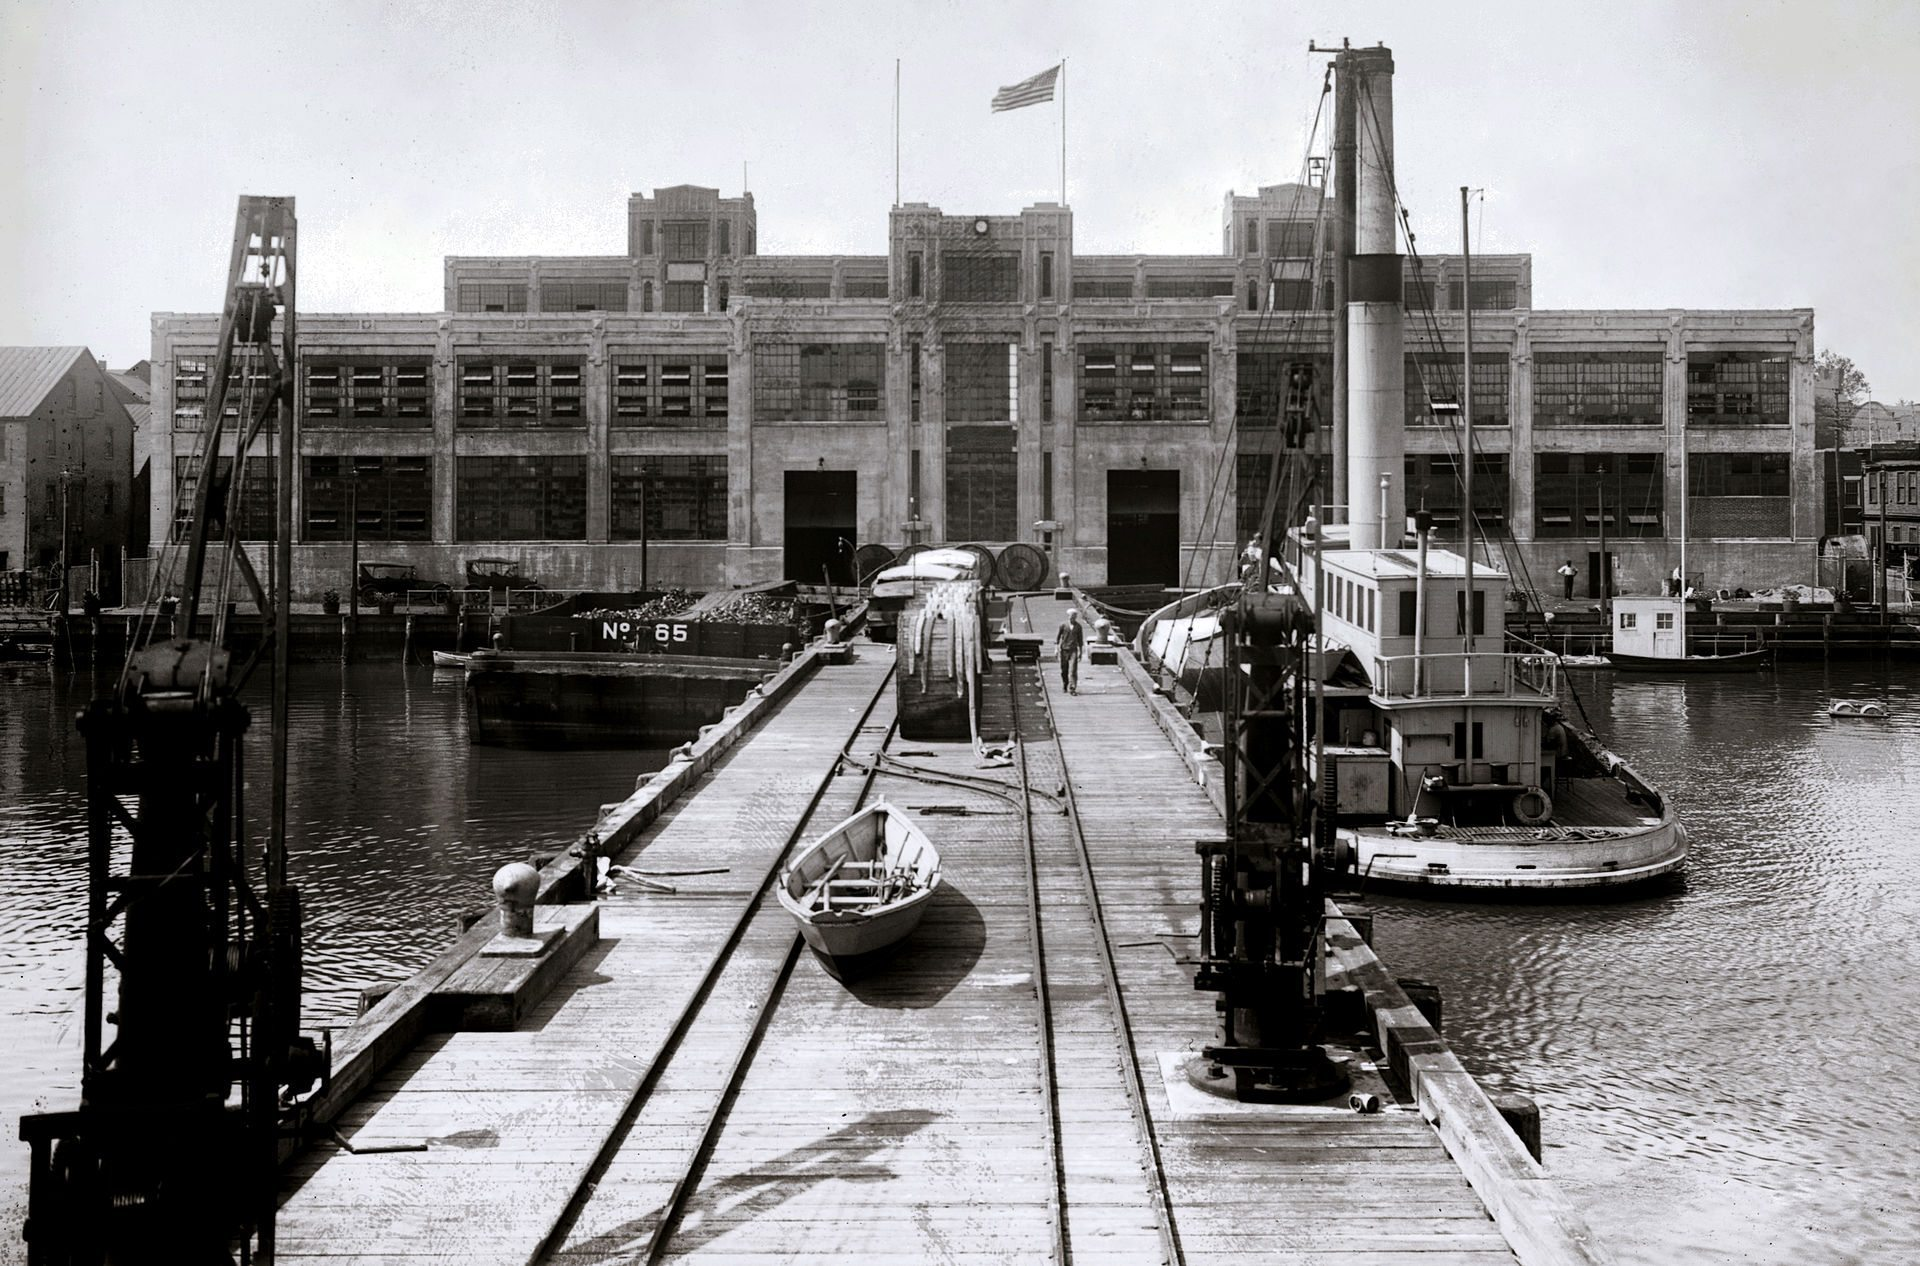 Image: 1922 photo of the US Naval Torpedo Station manufacturing building